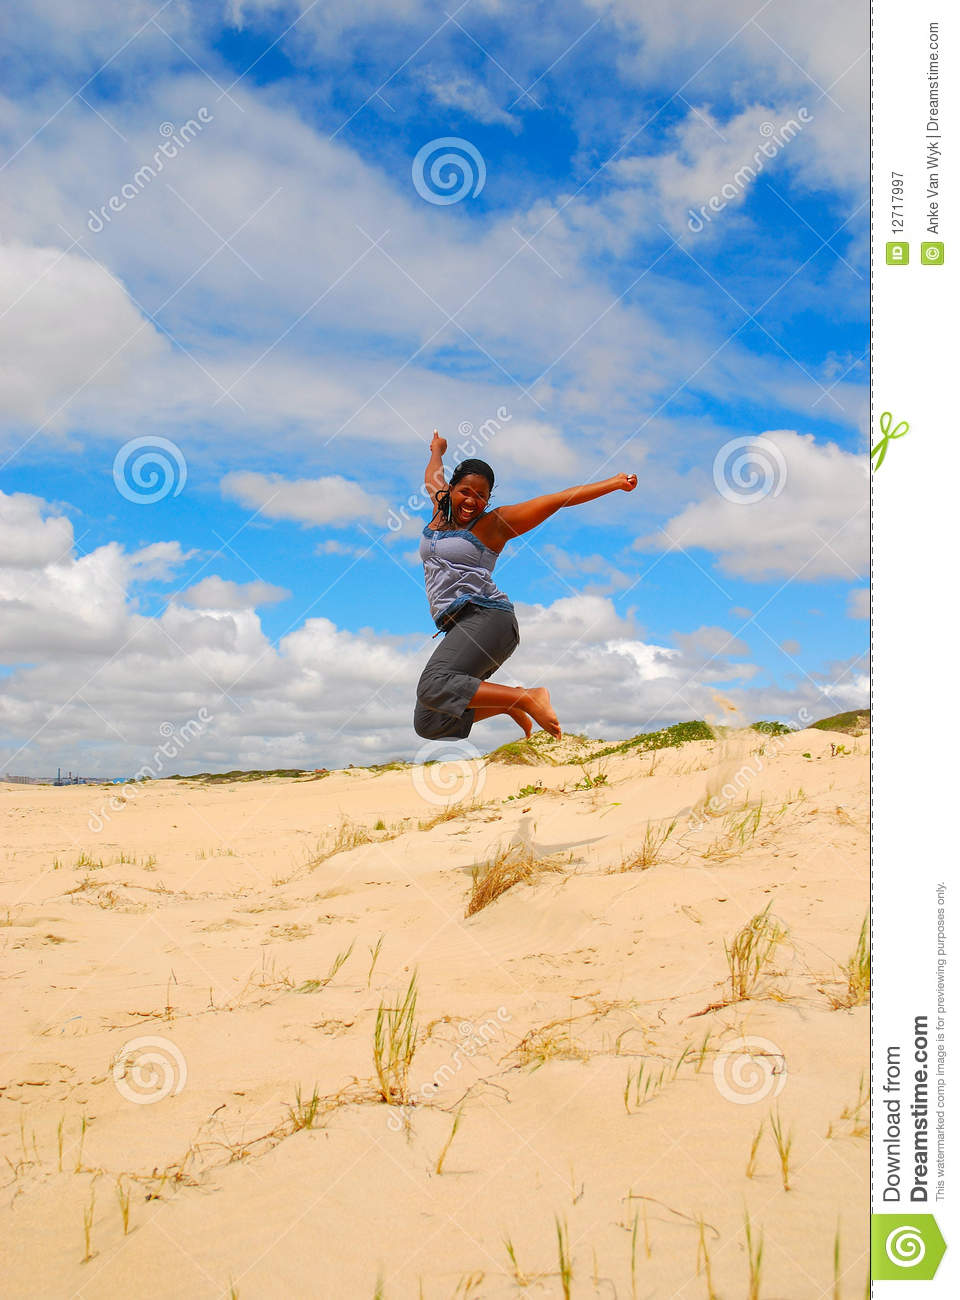 jump for joy royalty free stock photography image 12717997